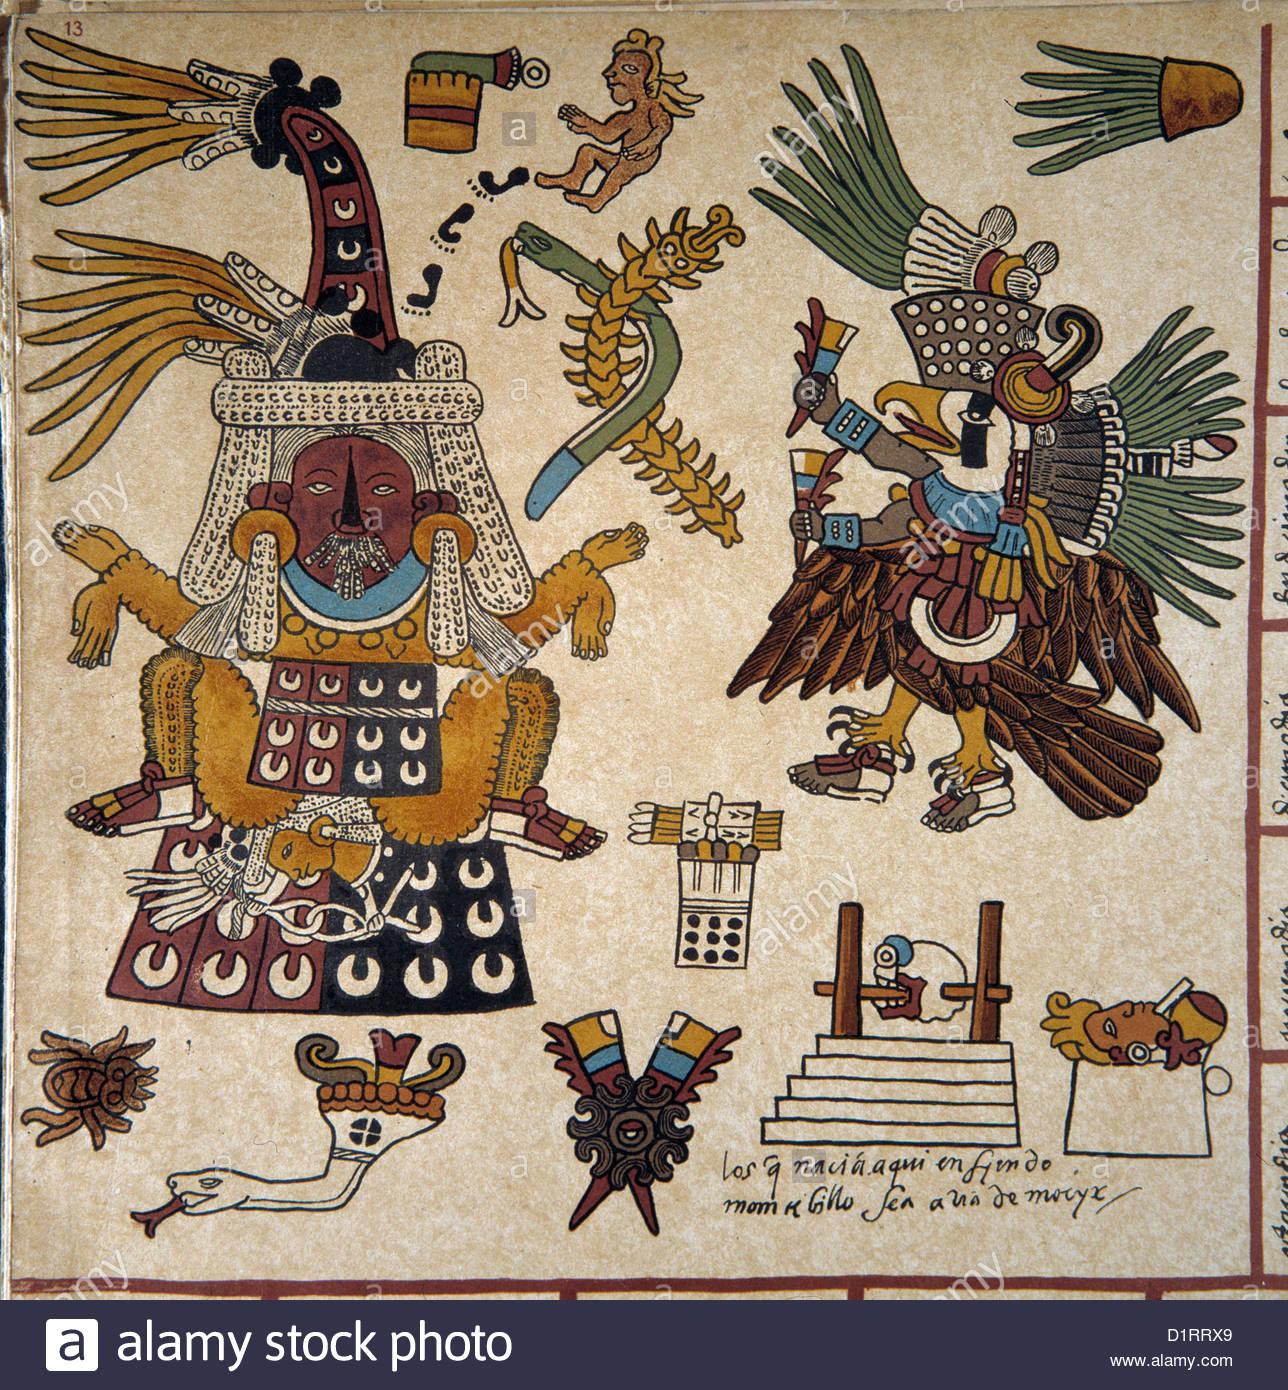 Mexico codex borbonicus aztecmexica detail circa 1519 1540 to the mexico codex borbonicus aztecmexica detail circa 1519 1540 to the left the goddess yxcuinagoddess of carnal passions biocorpaavc Images